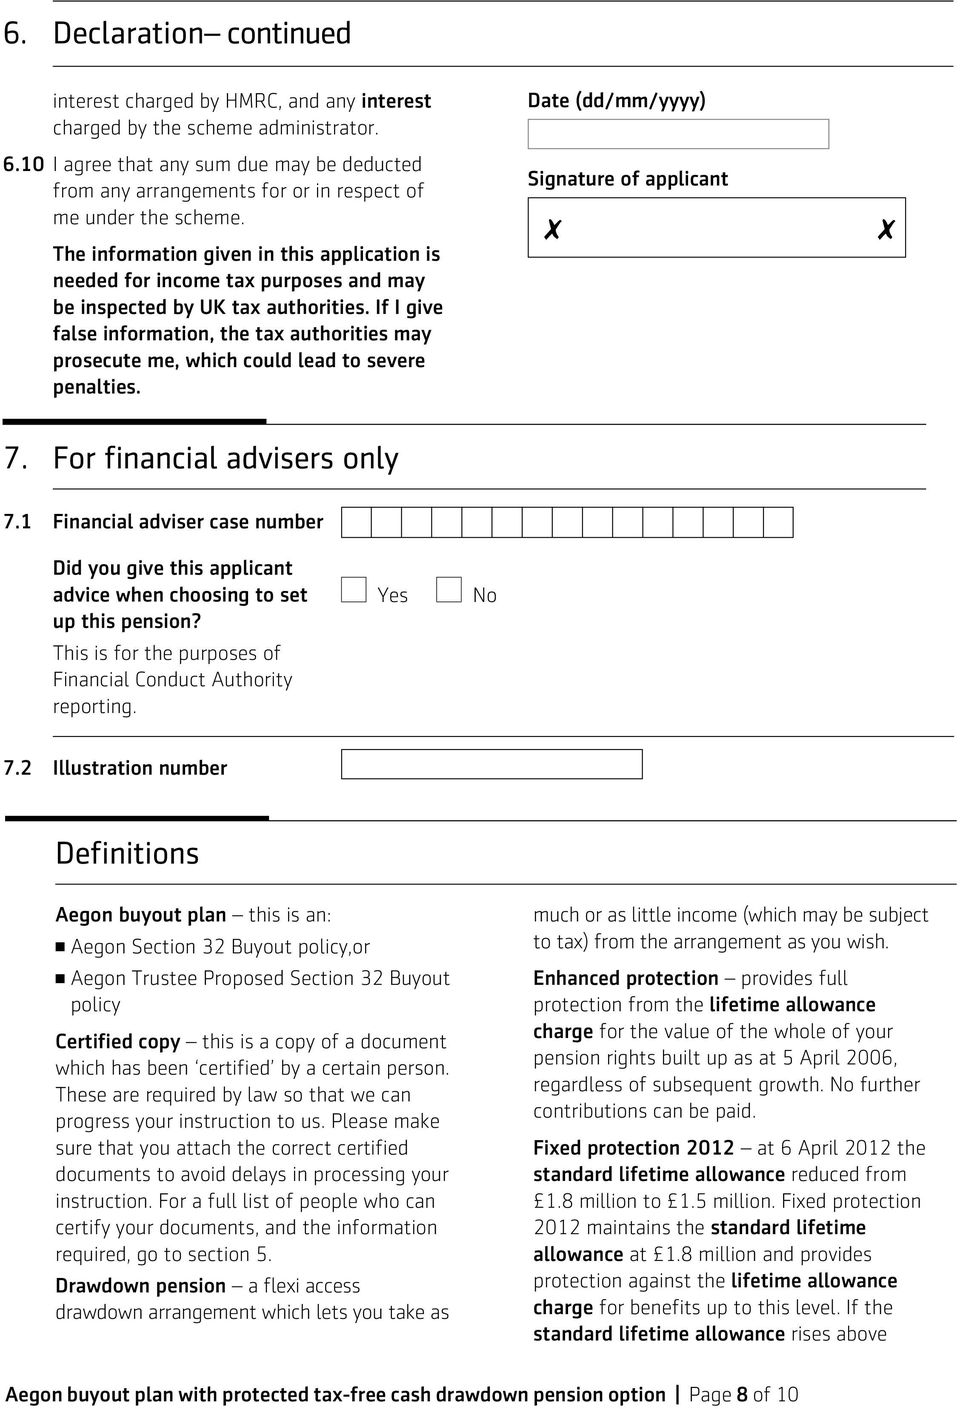 The information given in this application is needed for income tax purposes and may be inspected by UK tax authorities.